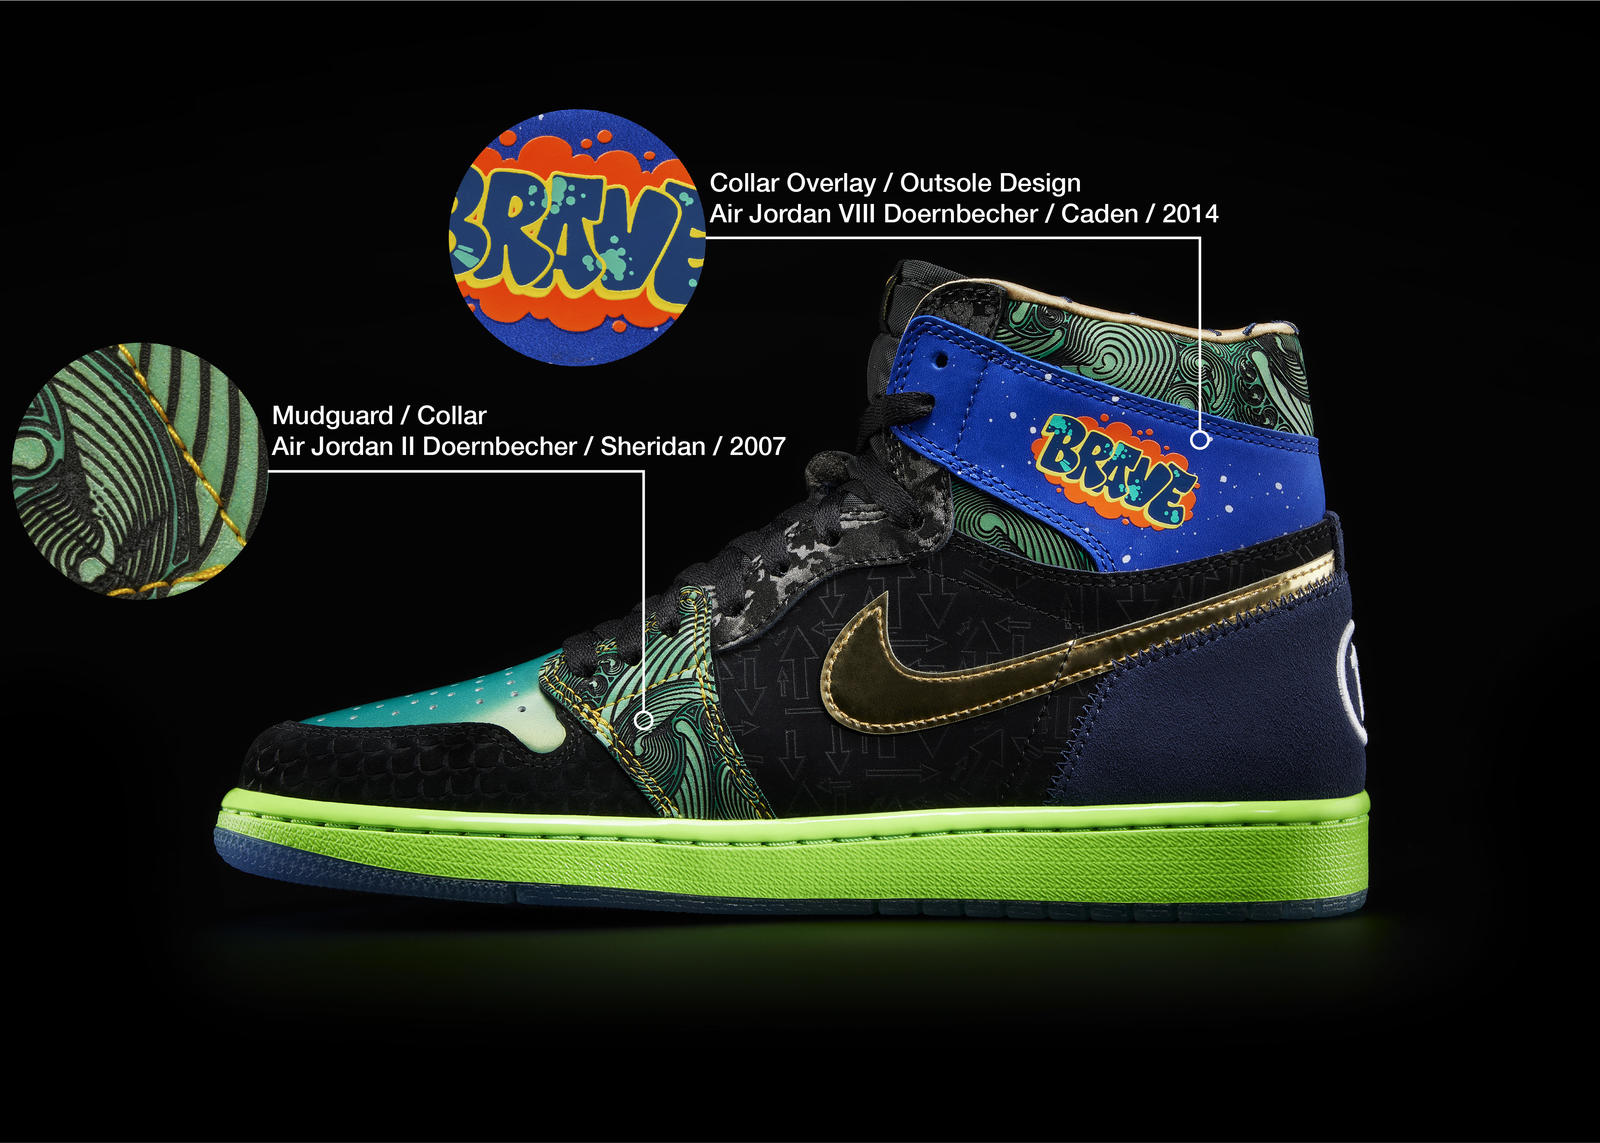 Nike Doernbecher Freestyle 2021 Air Jordan I What The Official Images Release Date 0